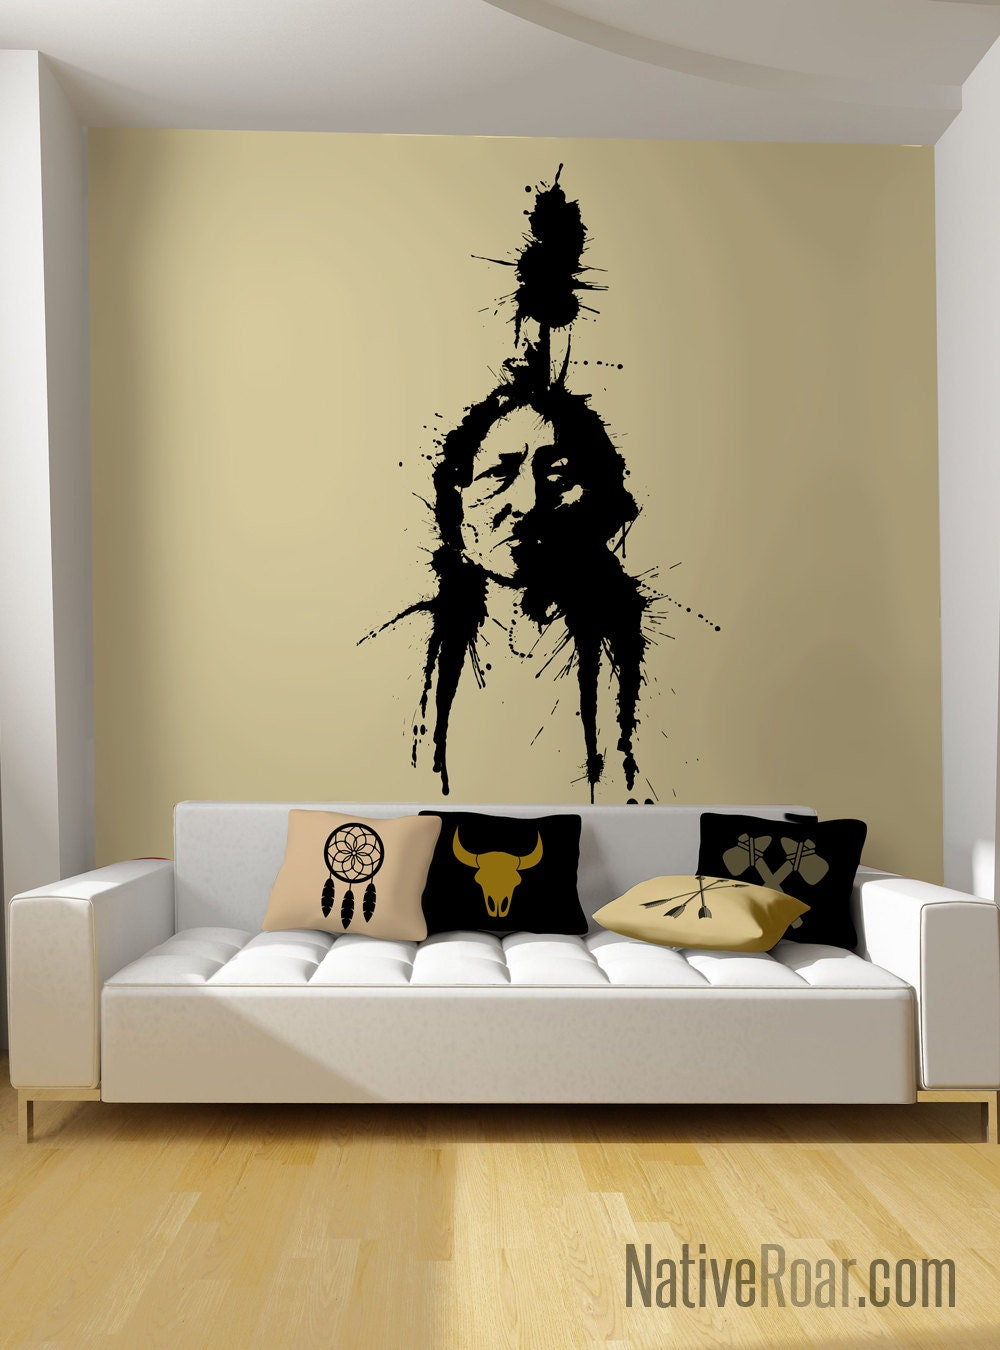 Chief Sitting Bull Wall Decal Ink Illustration Native American   Etsy